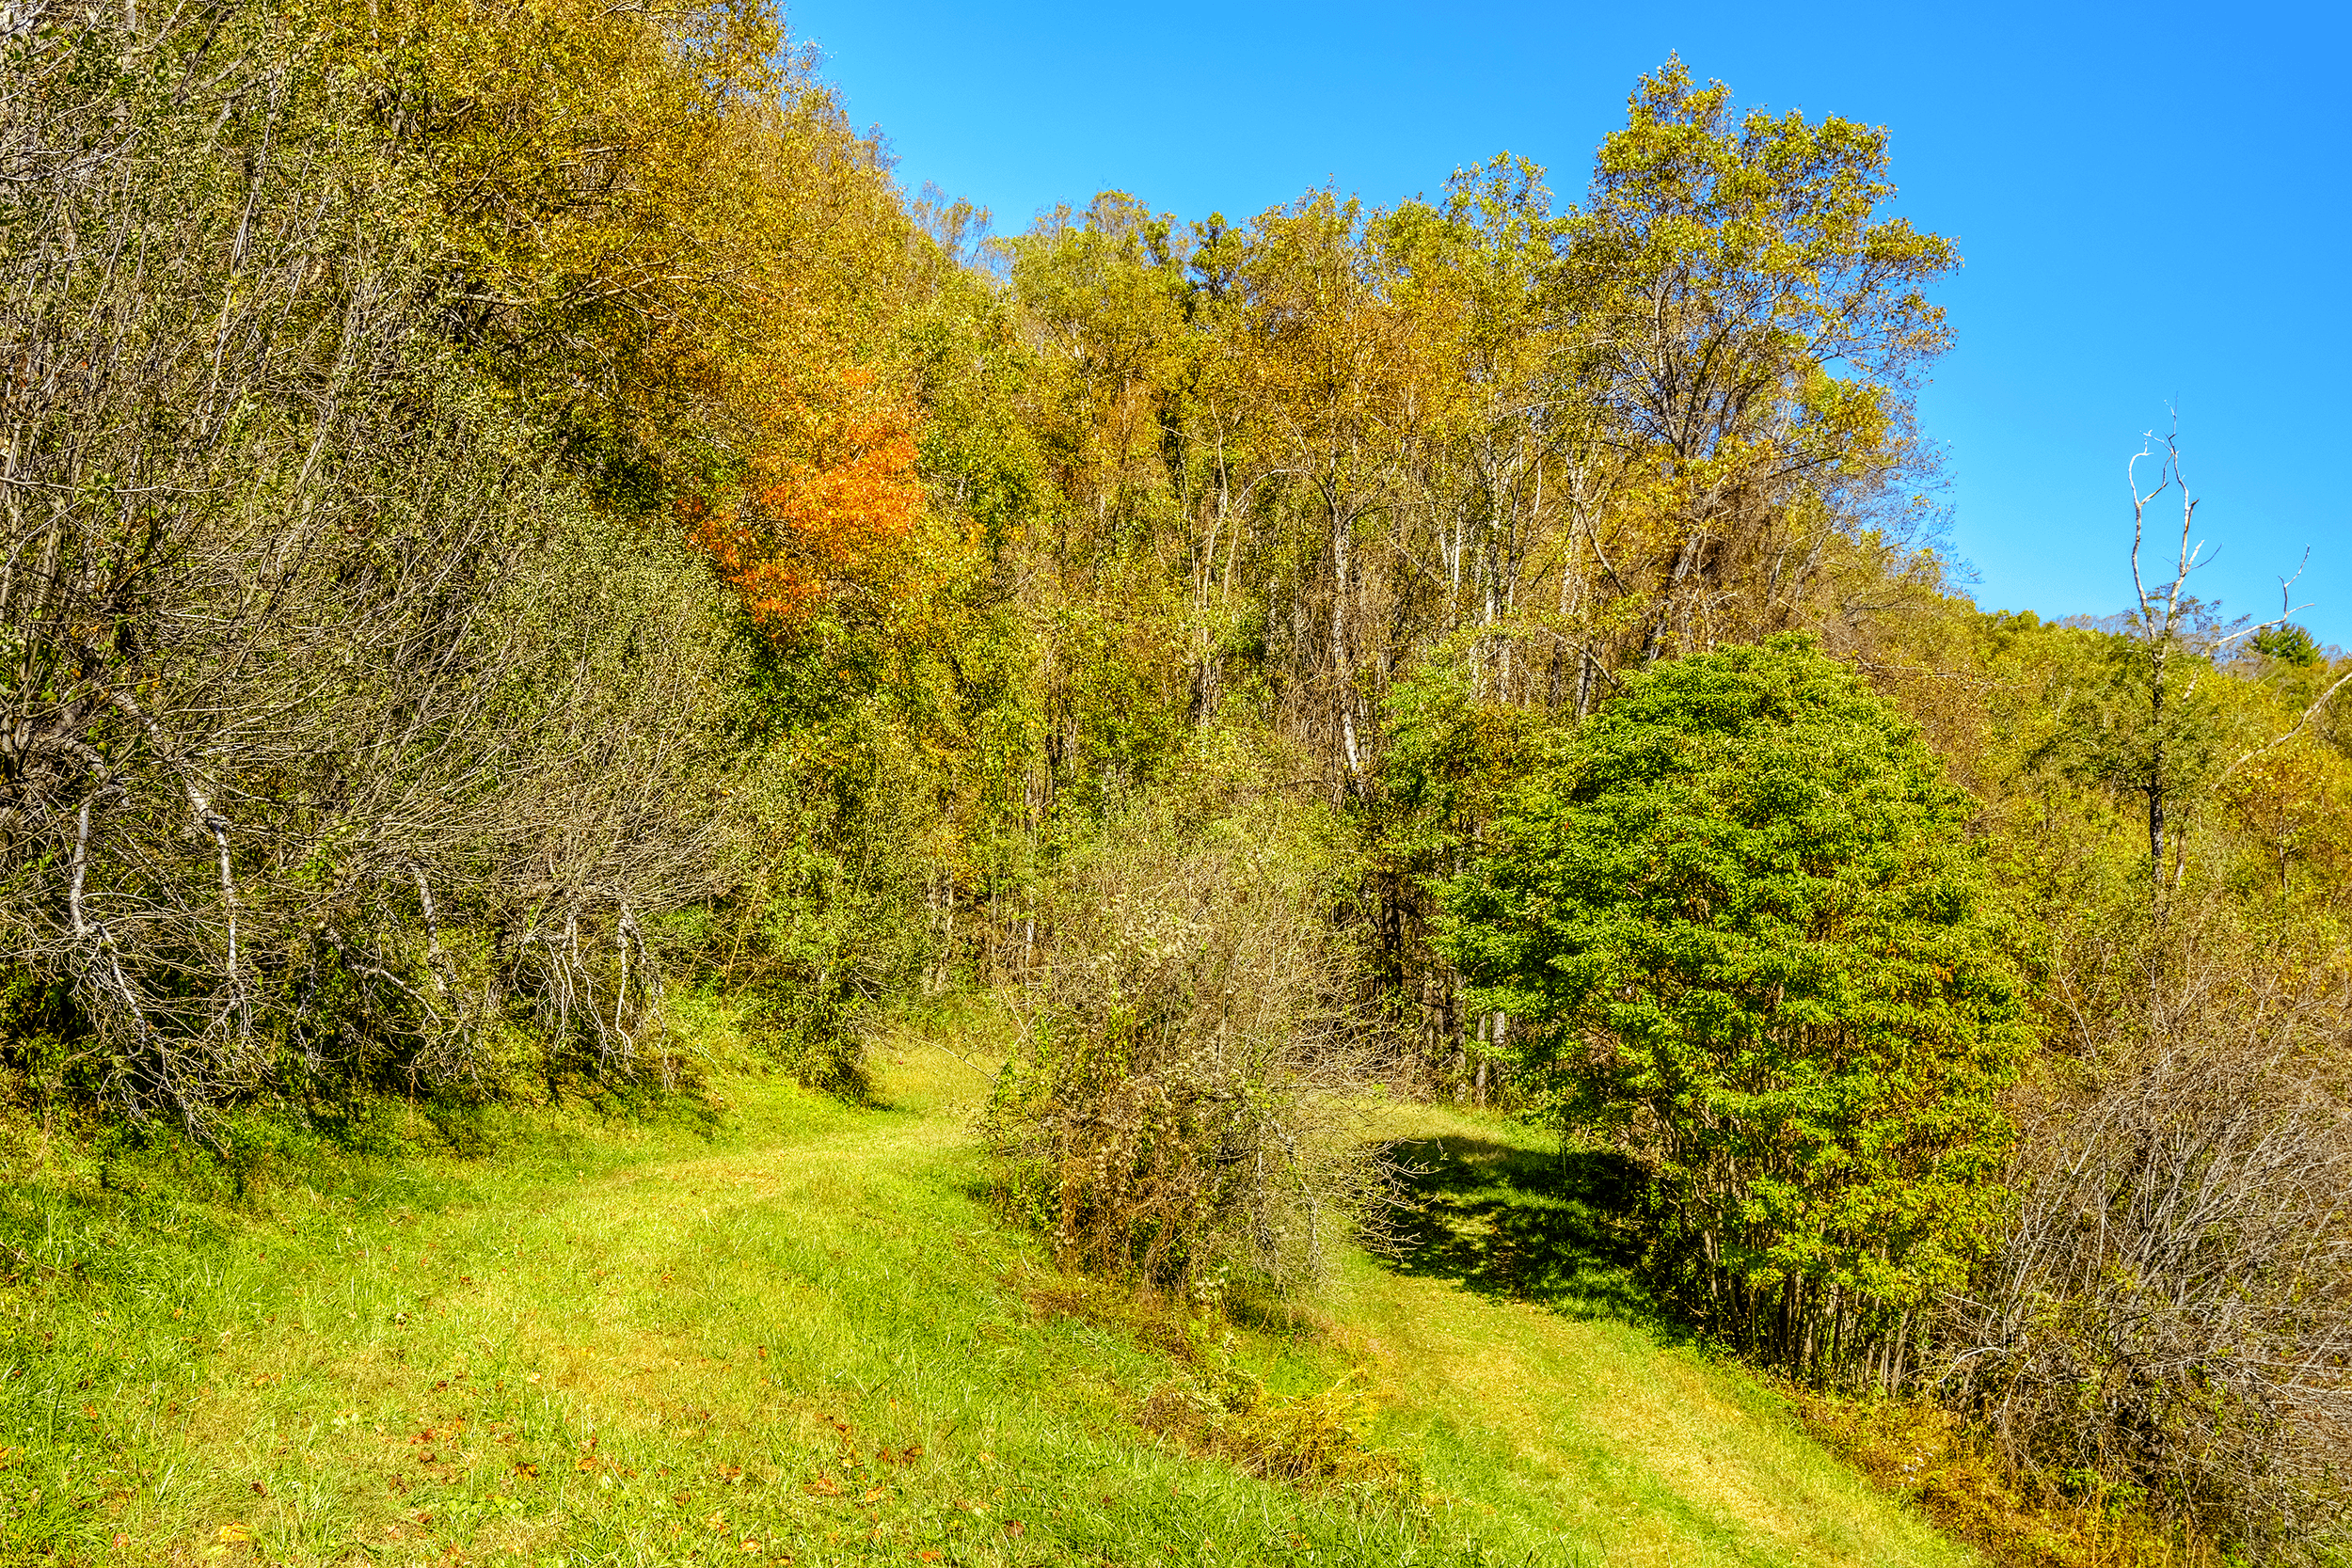 Fall is particularly beautiful for a hike. The mornings are crisp but during the day it is still warm.